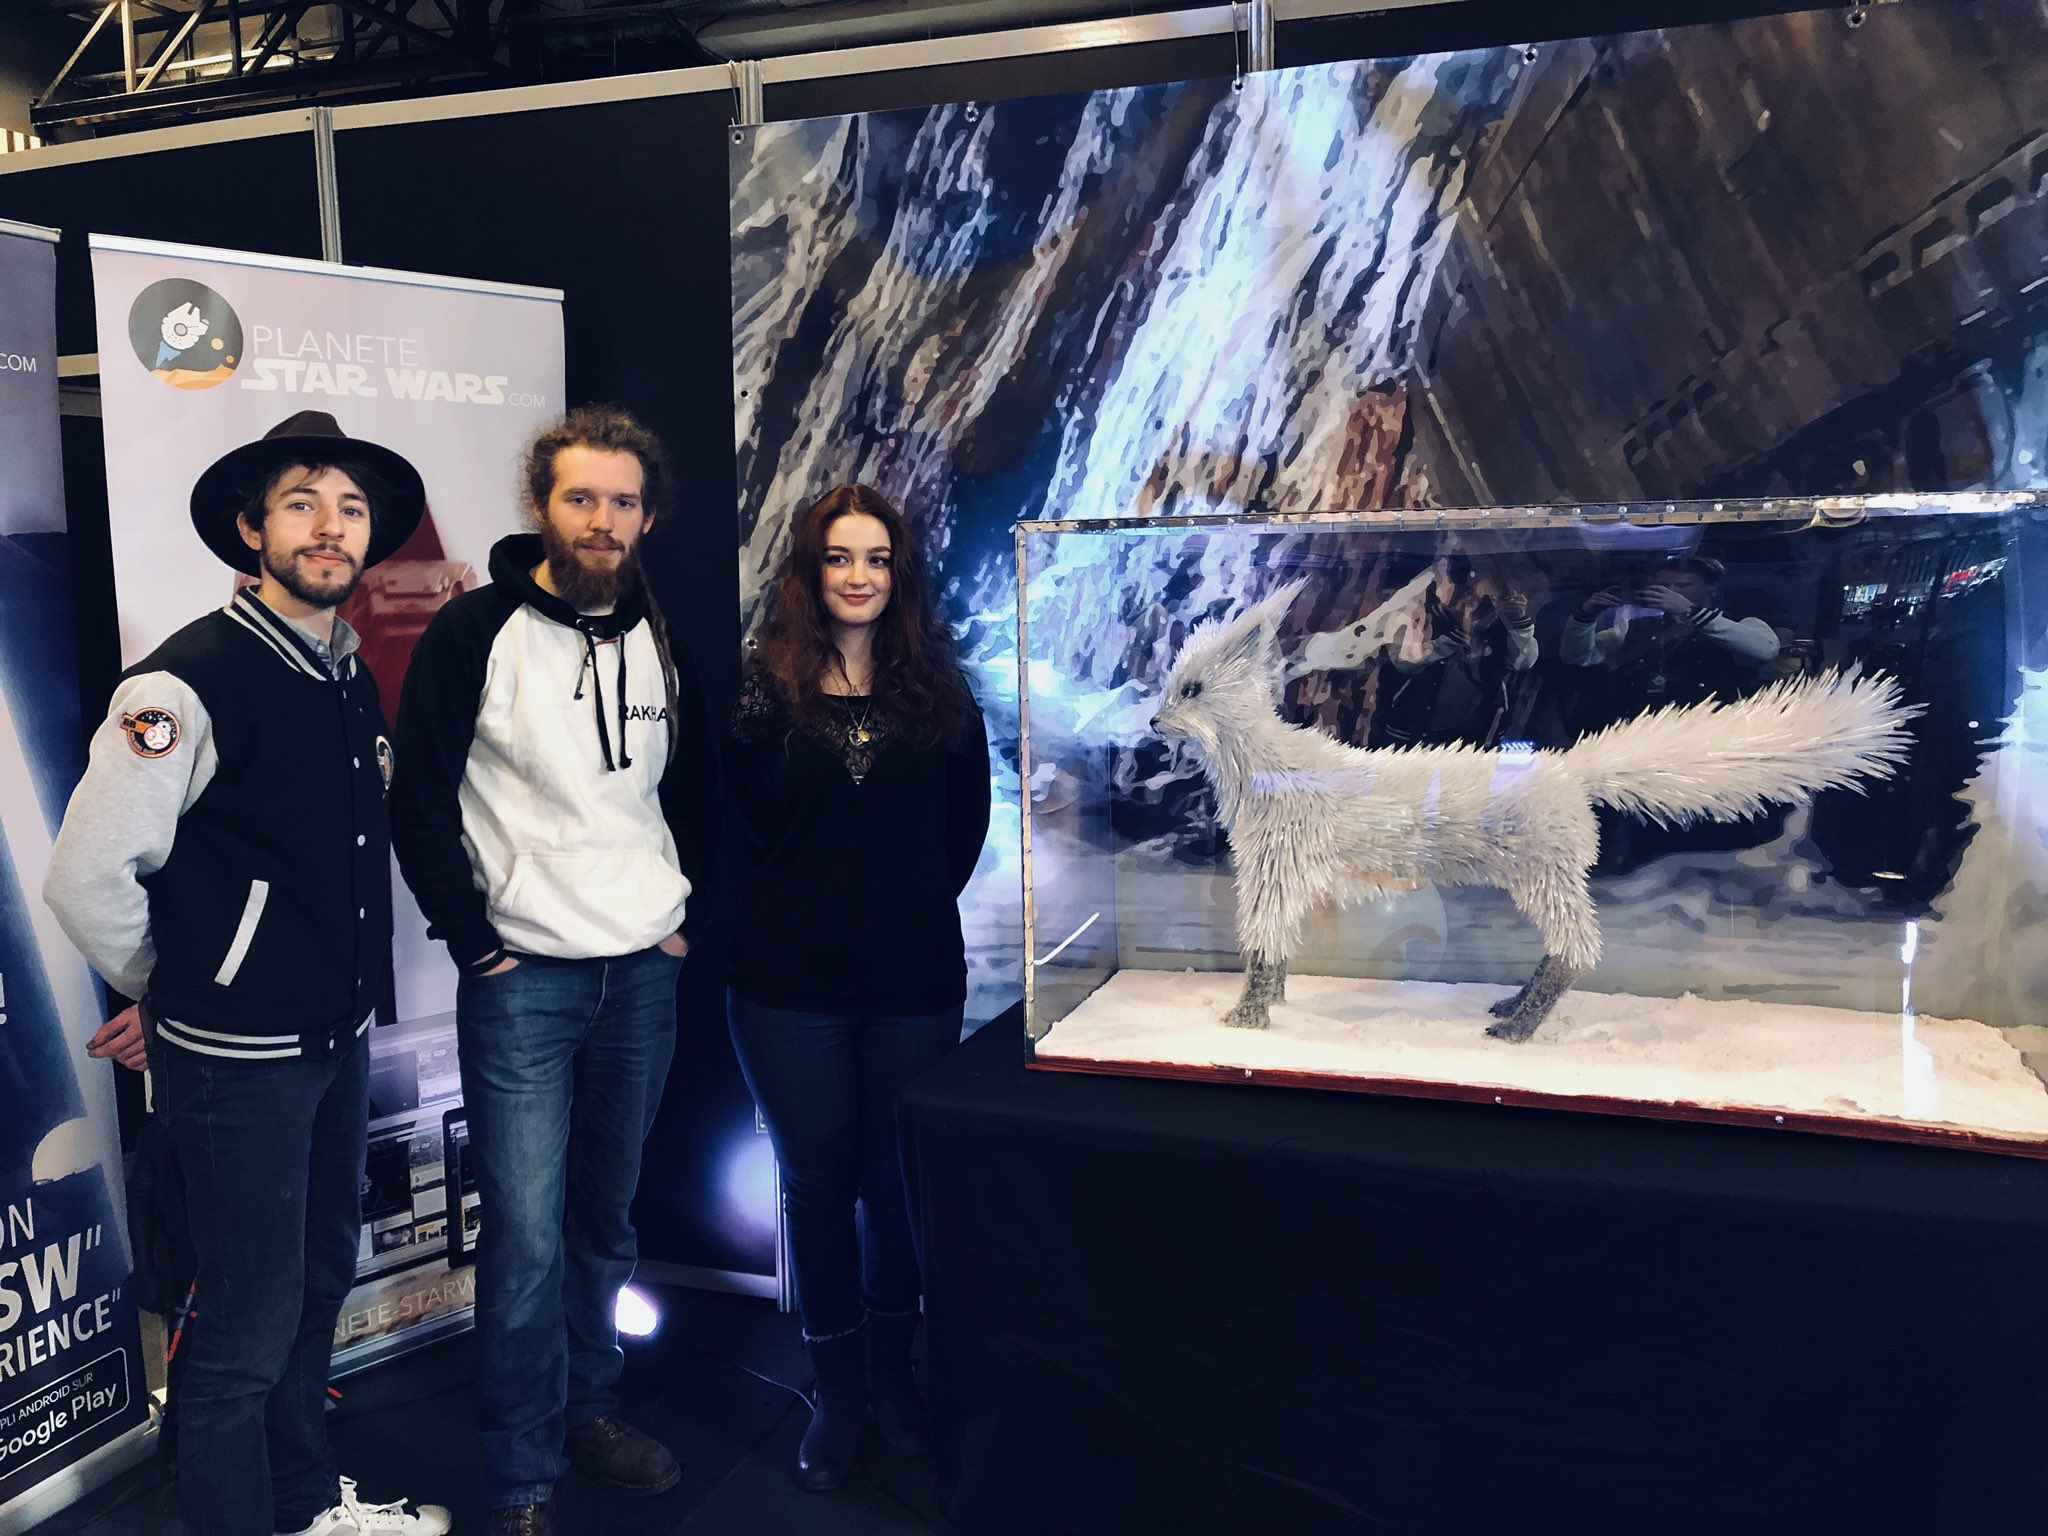 Planete Star Wars On Twitter First Fan Made Vulptex In The World Showed In Paris At Parismanga What Do You Think Rianjohnson And Hamillhimself Starwars Starwarsfr Https T Co Hmrwv5m2i1